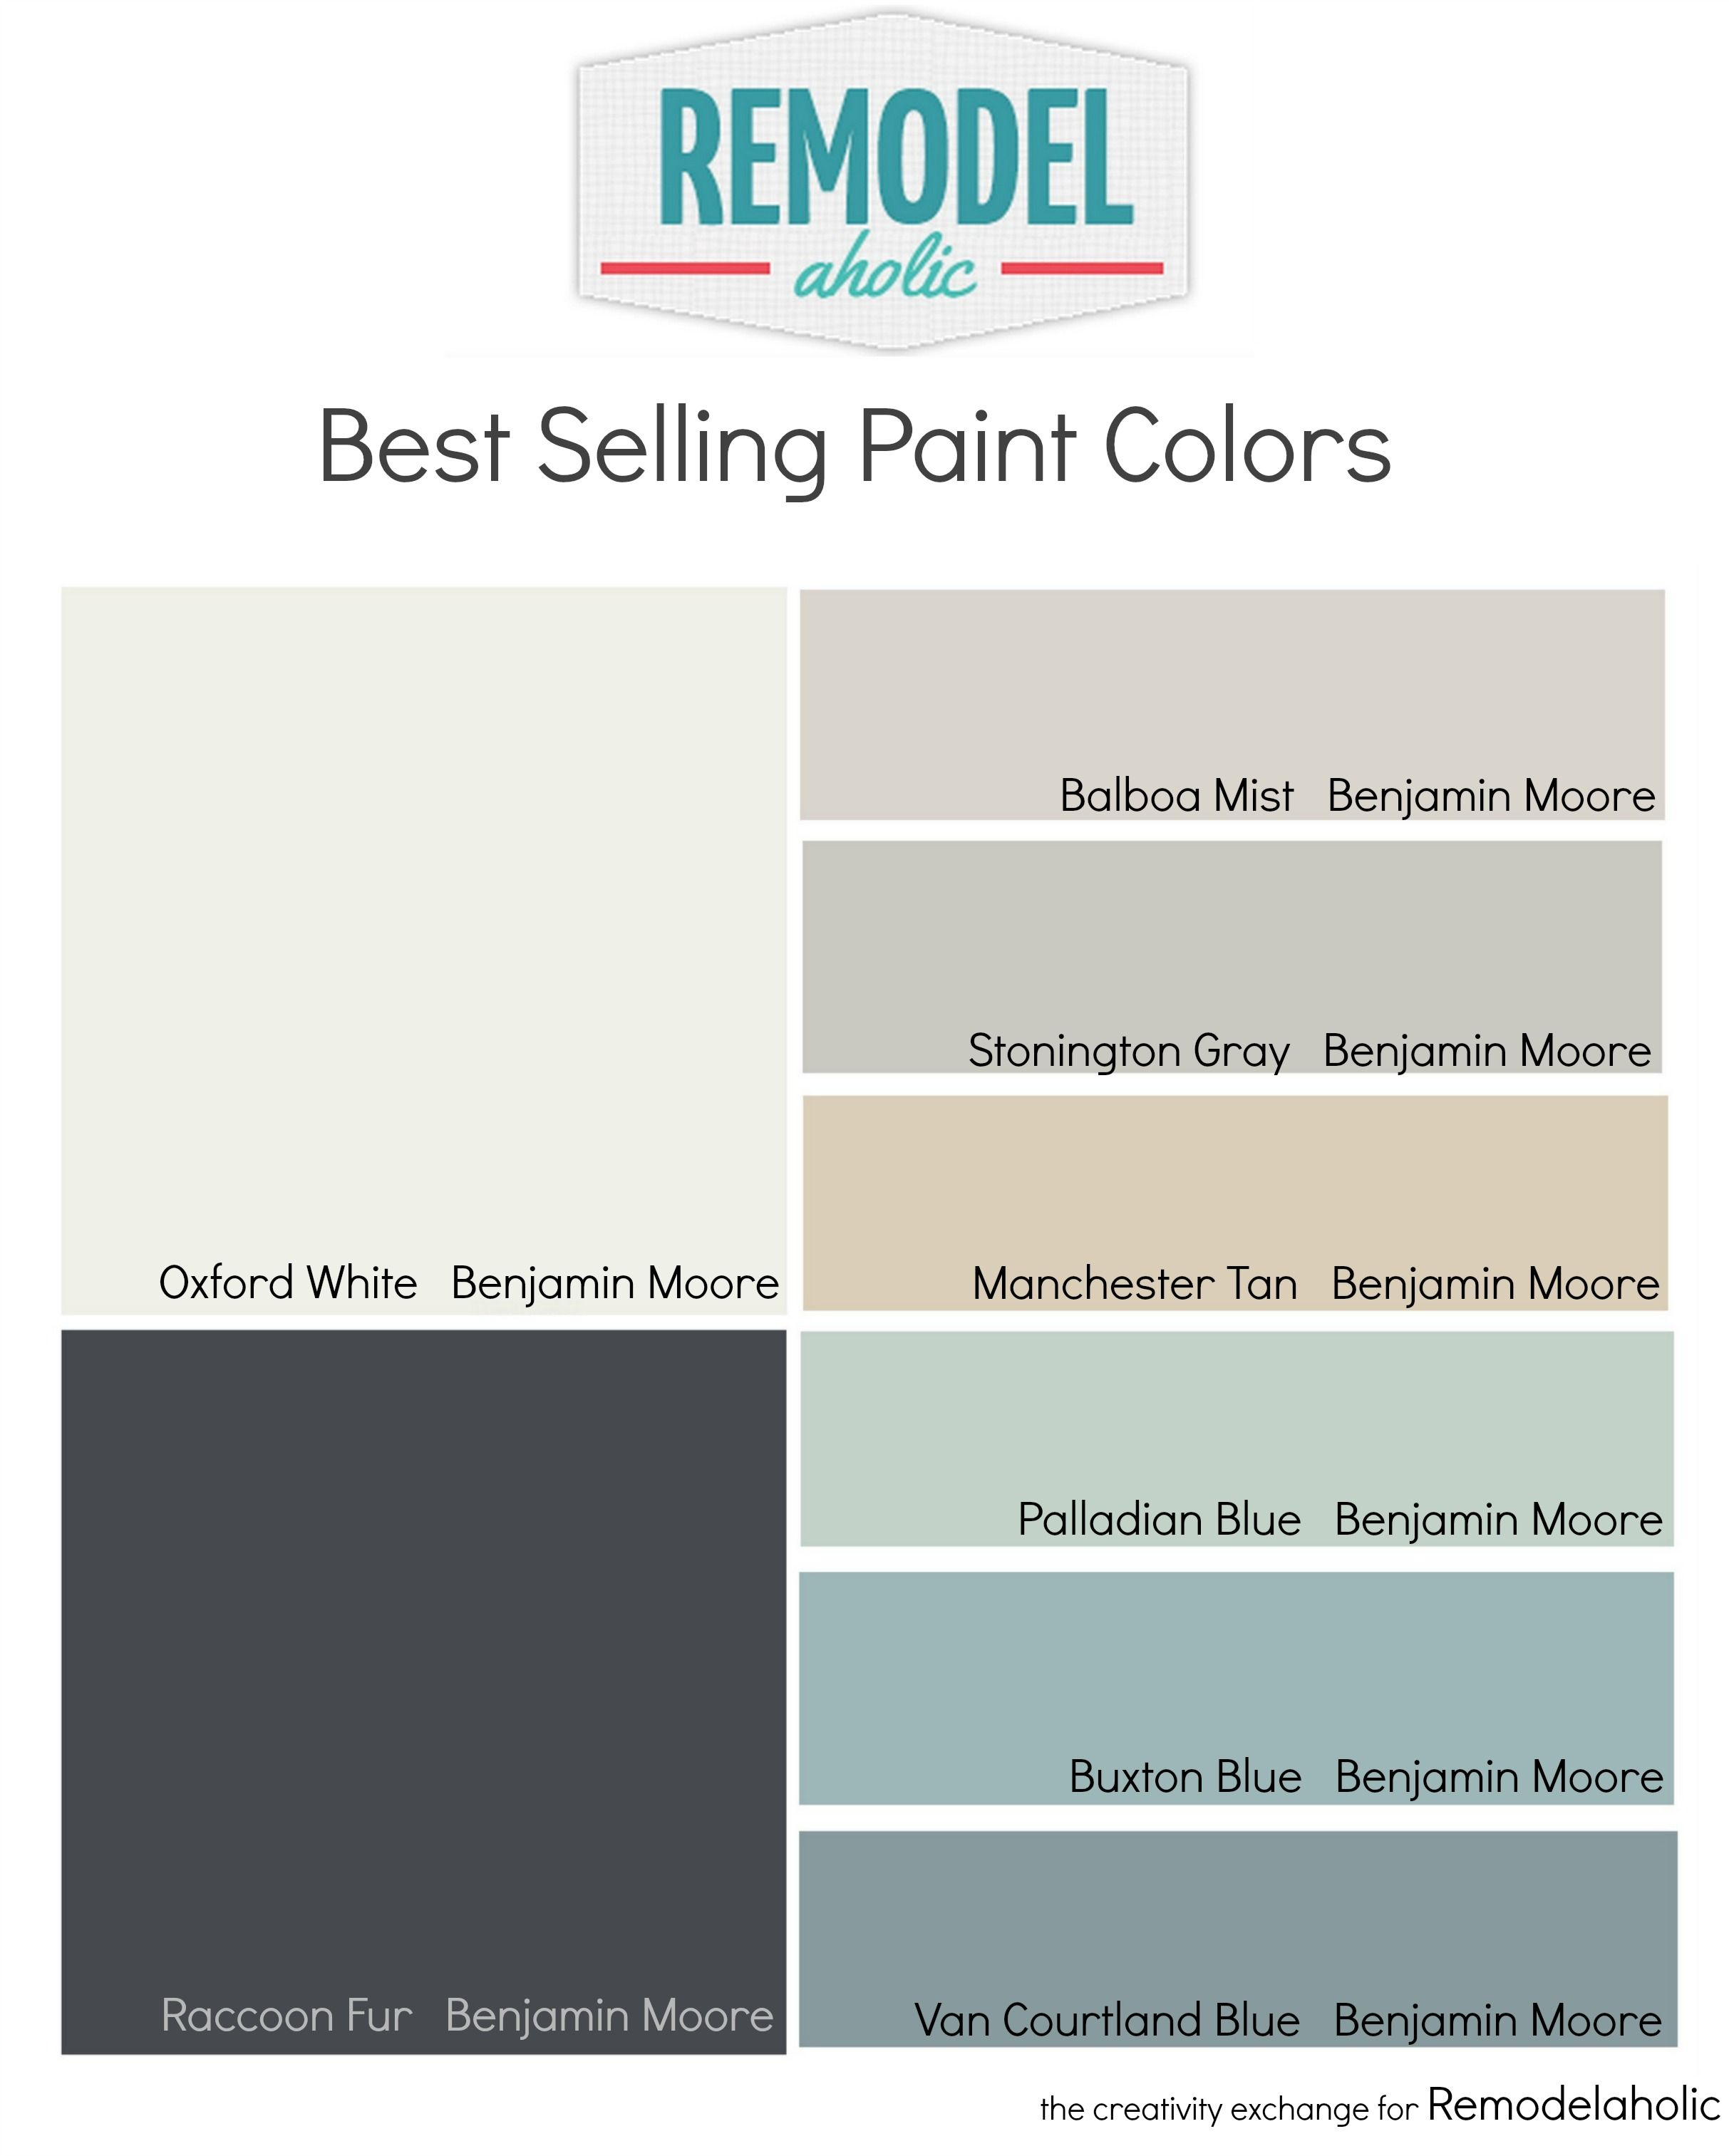 Most popular and best selling paint colors paint colors for Popular warm paint colors